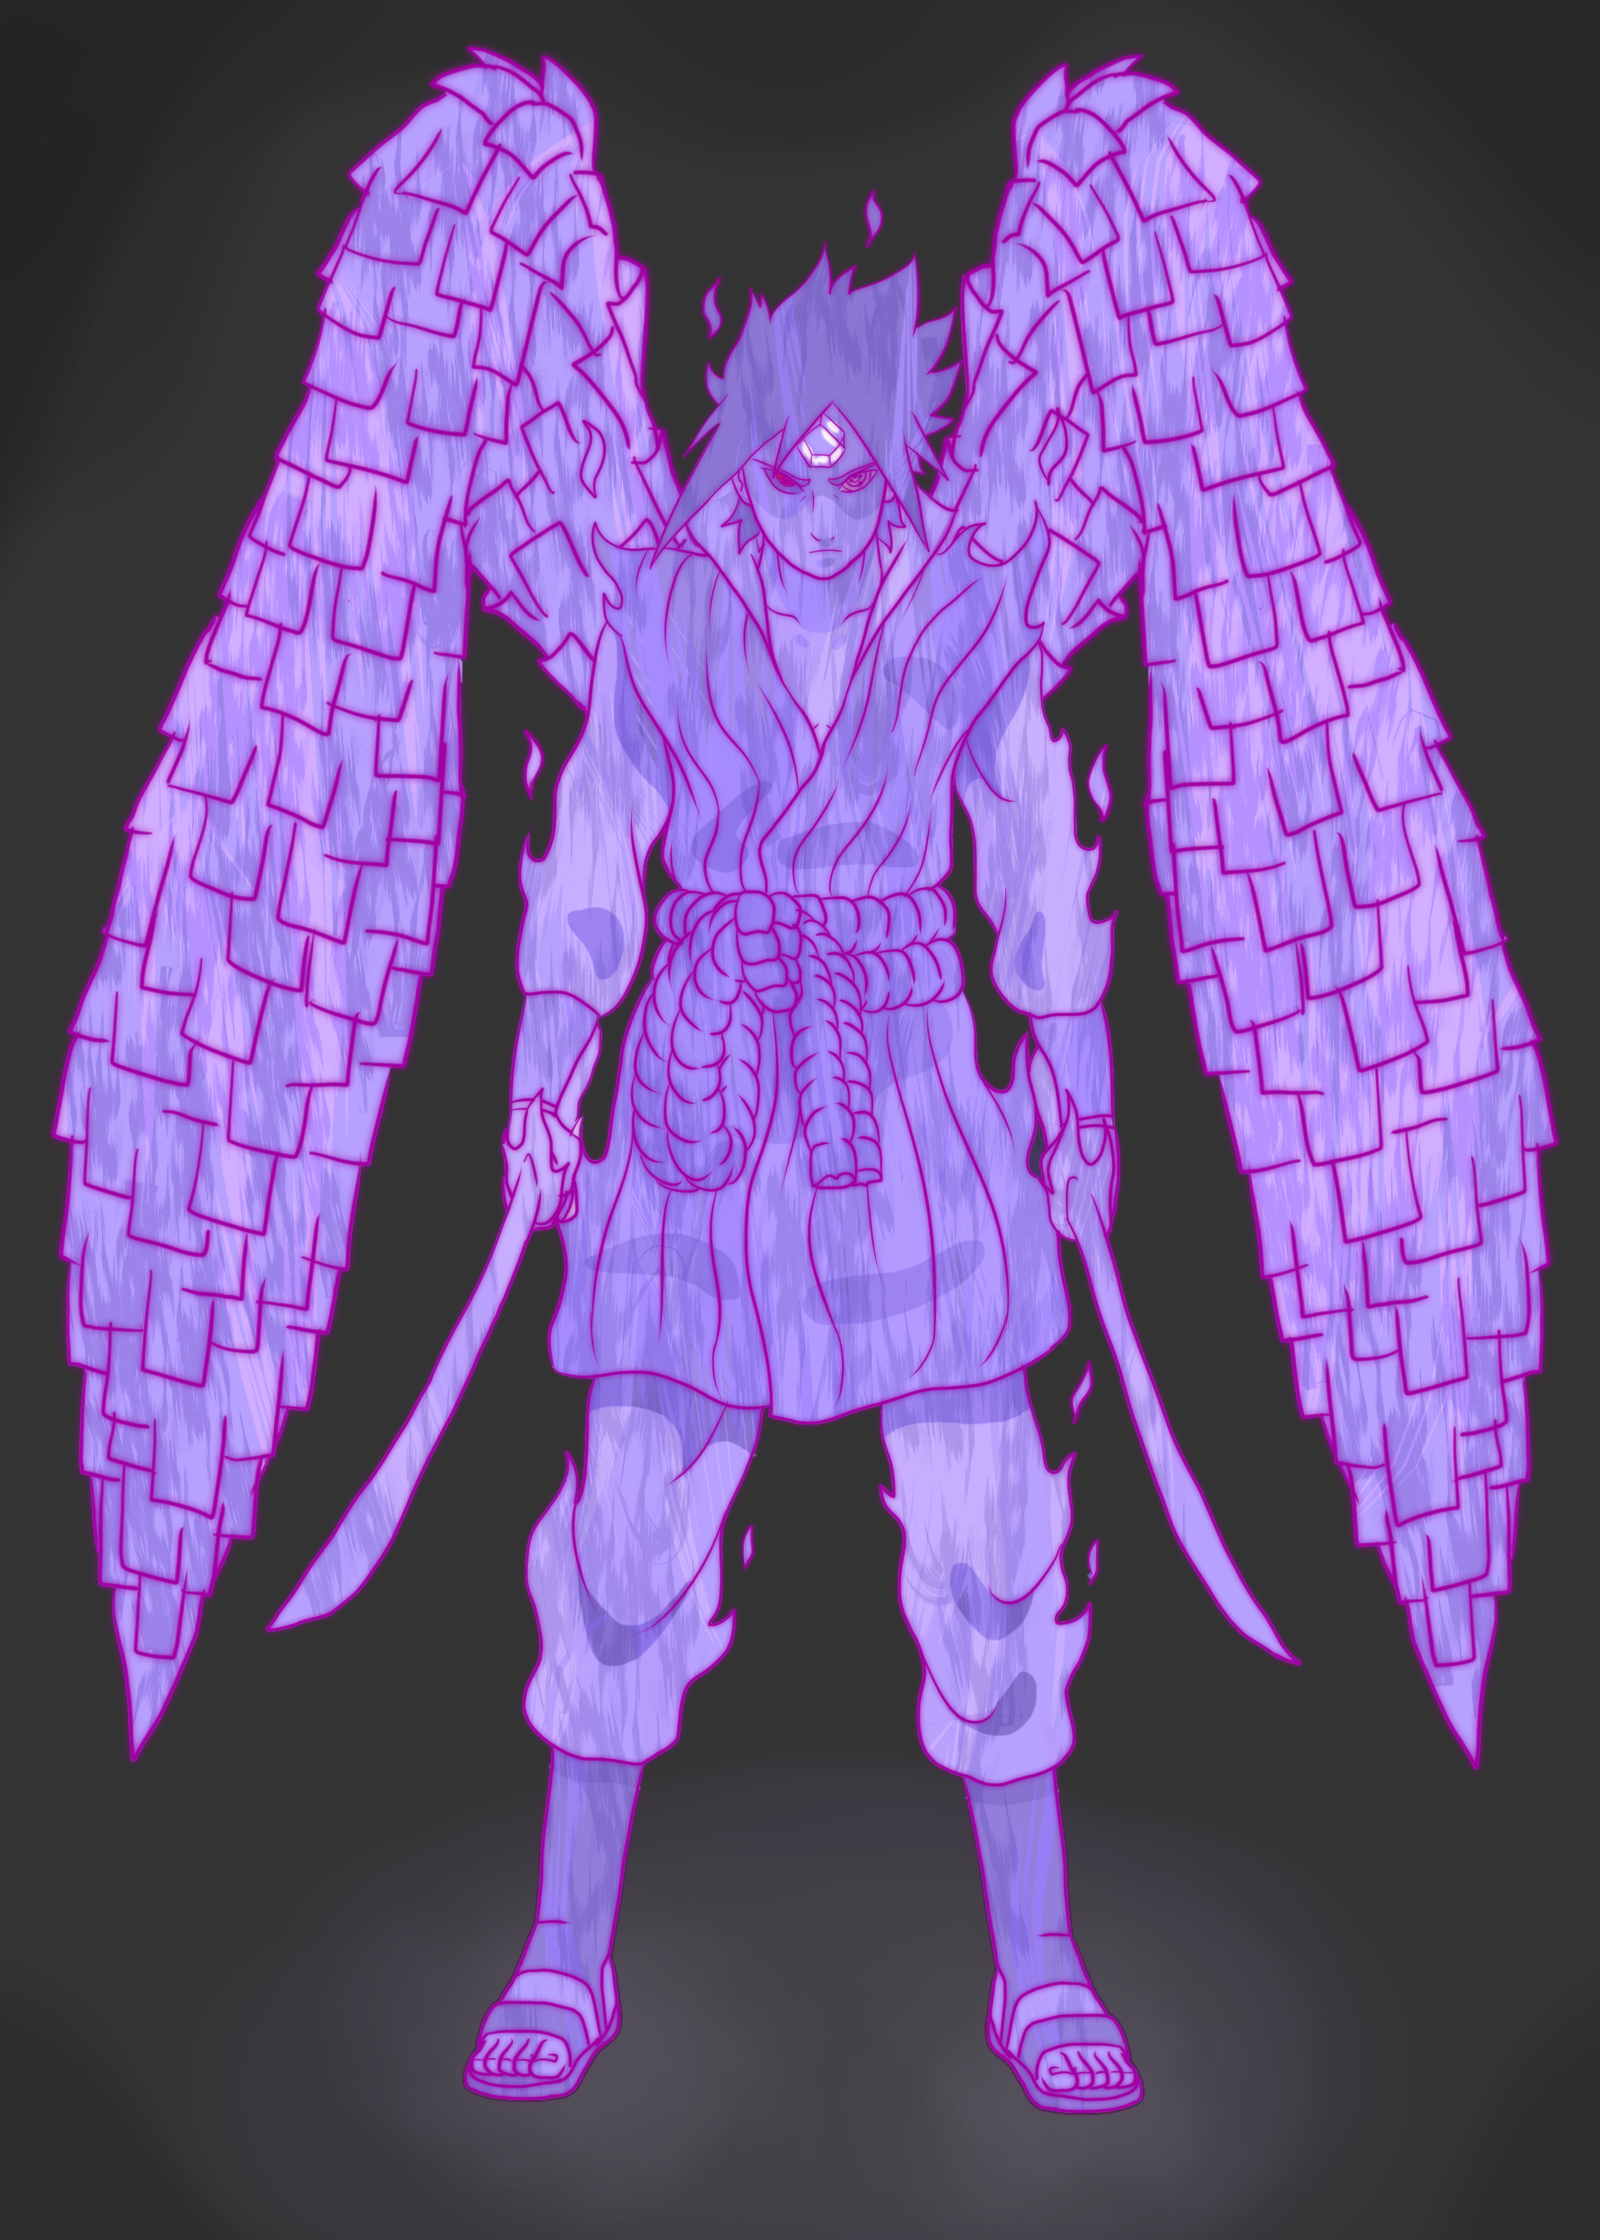 Sasuke Susanoo mode by MArttist on DeviantArt | Susanoo ...